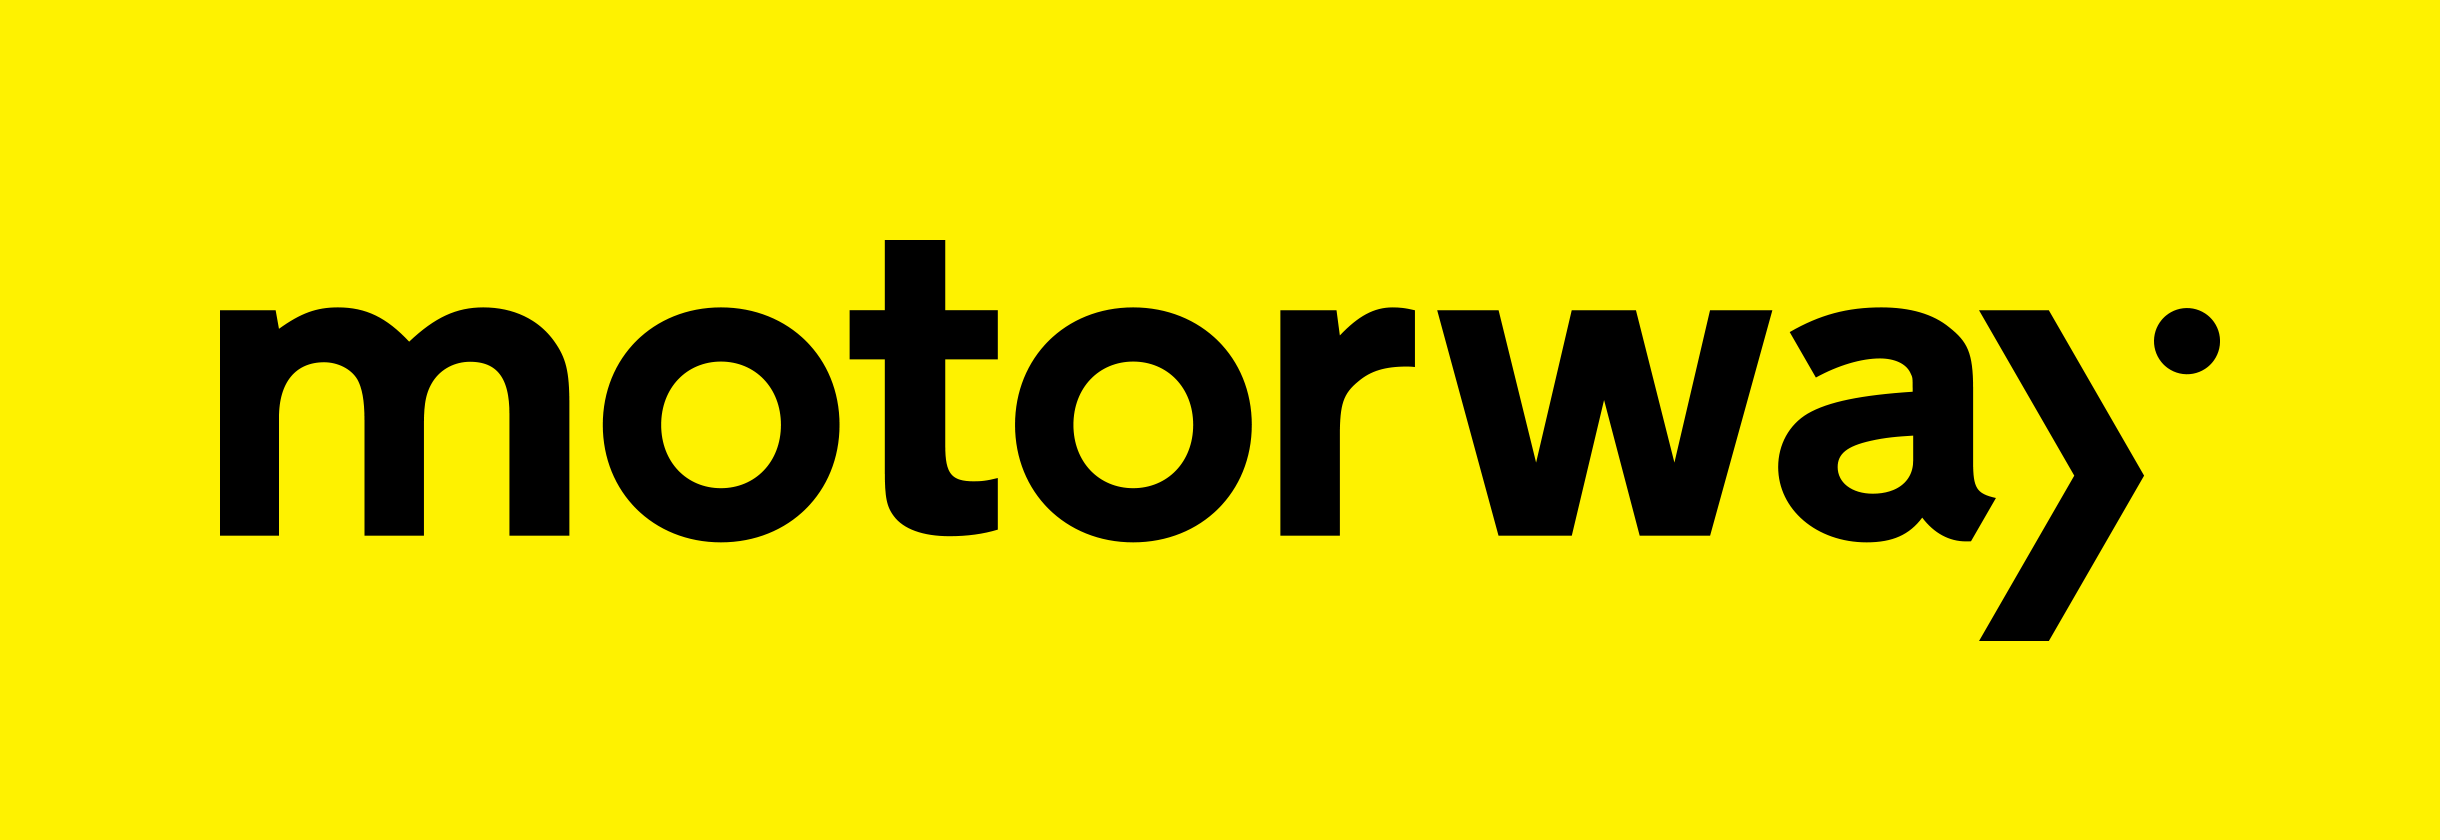 New Logo and Identity for Motorway by Koto